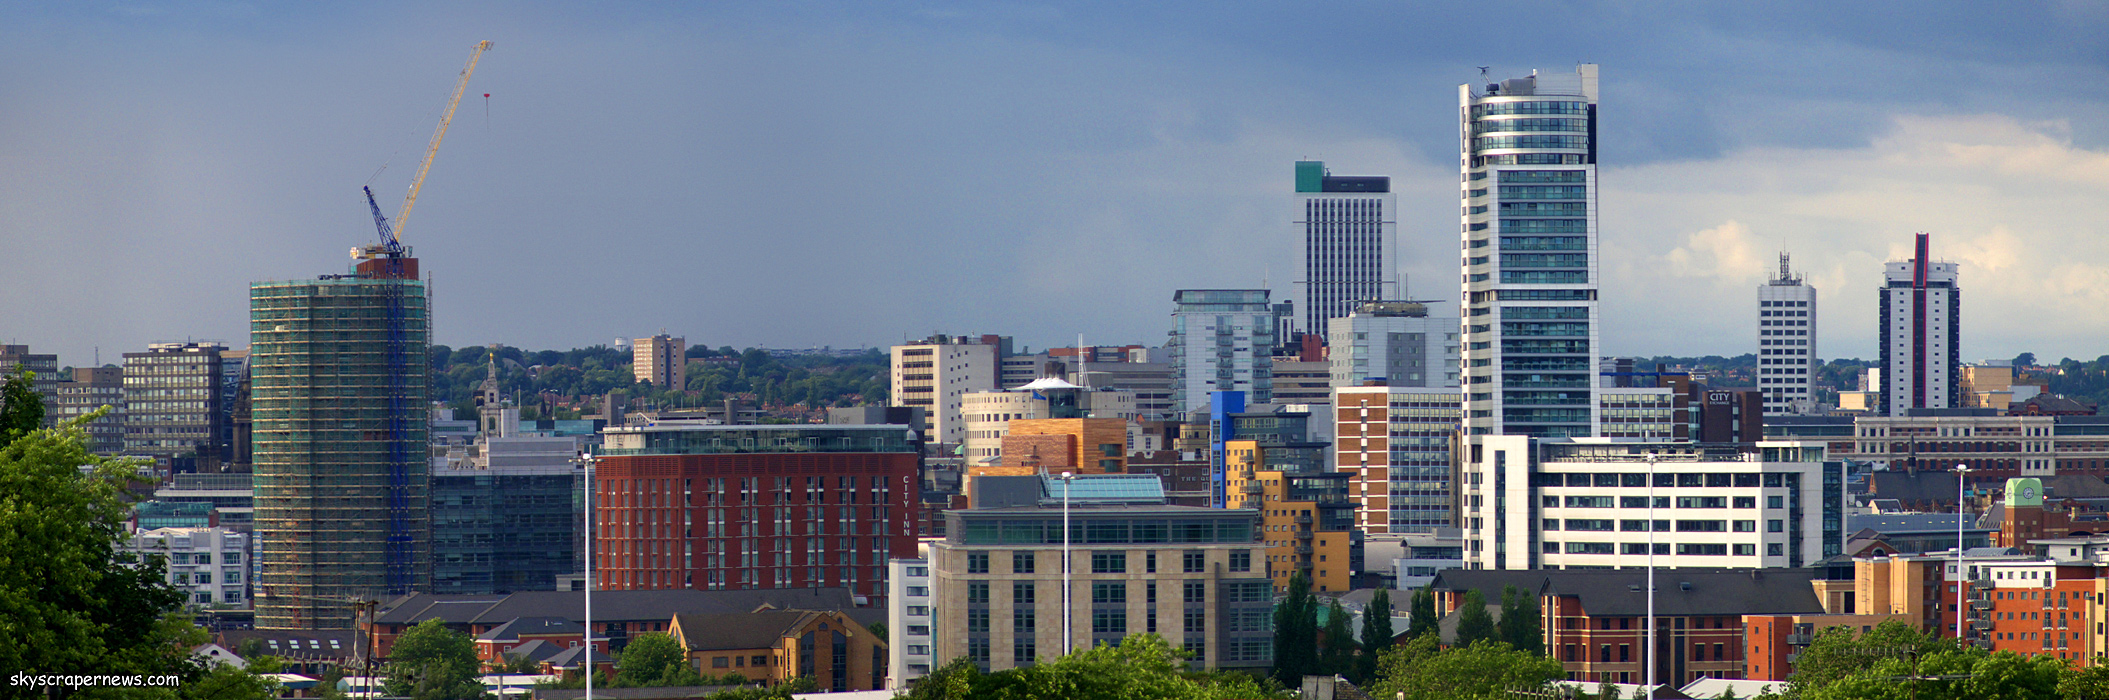 hypnotherapy leeds skyline image